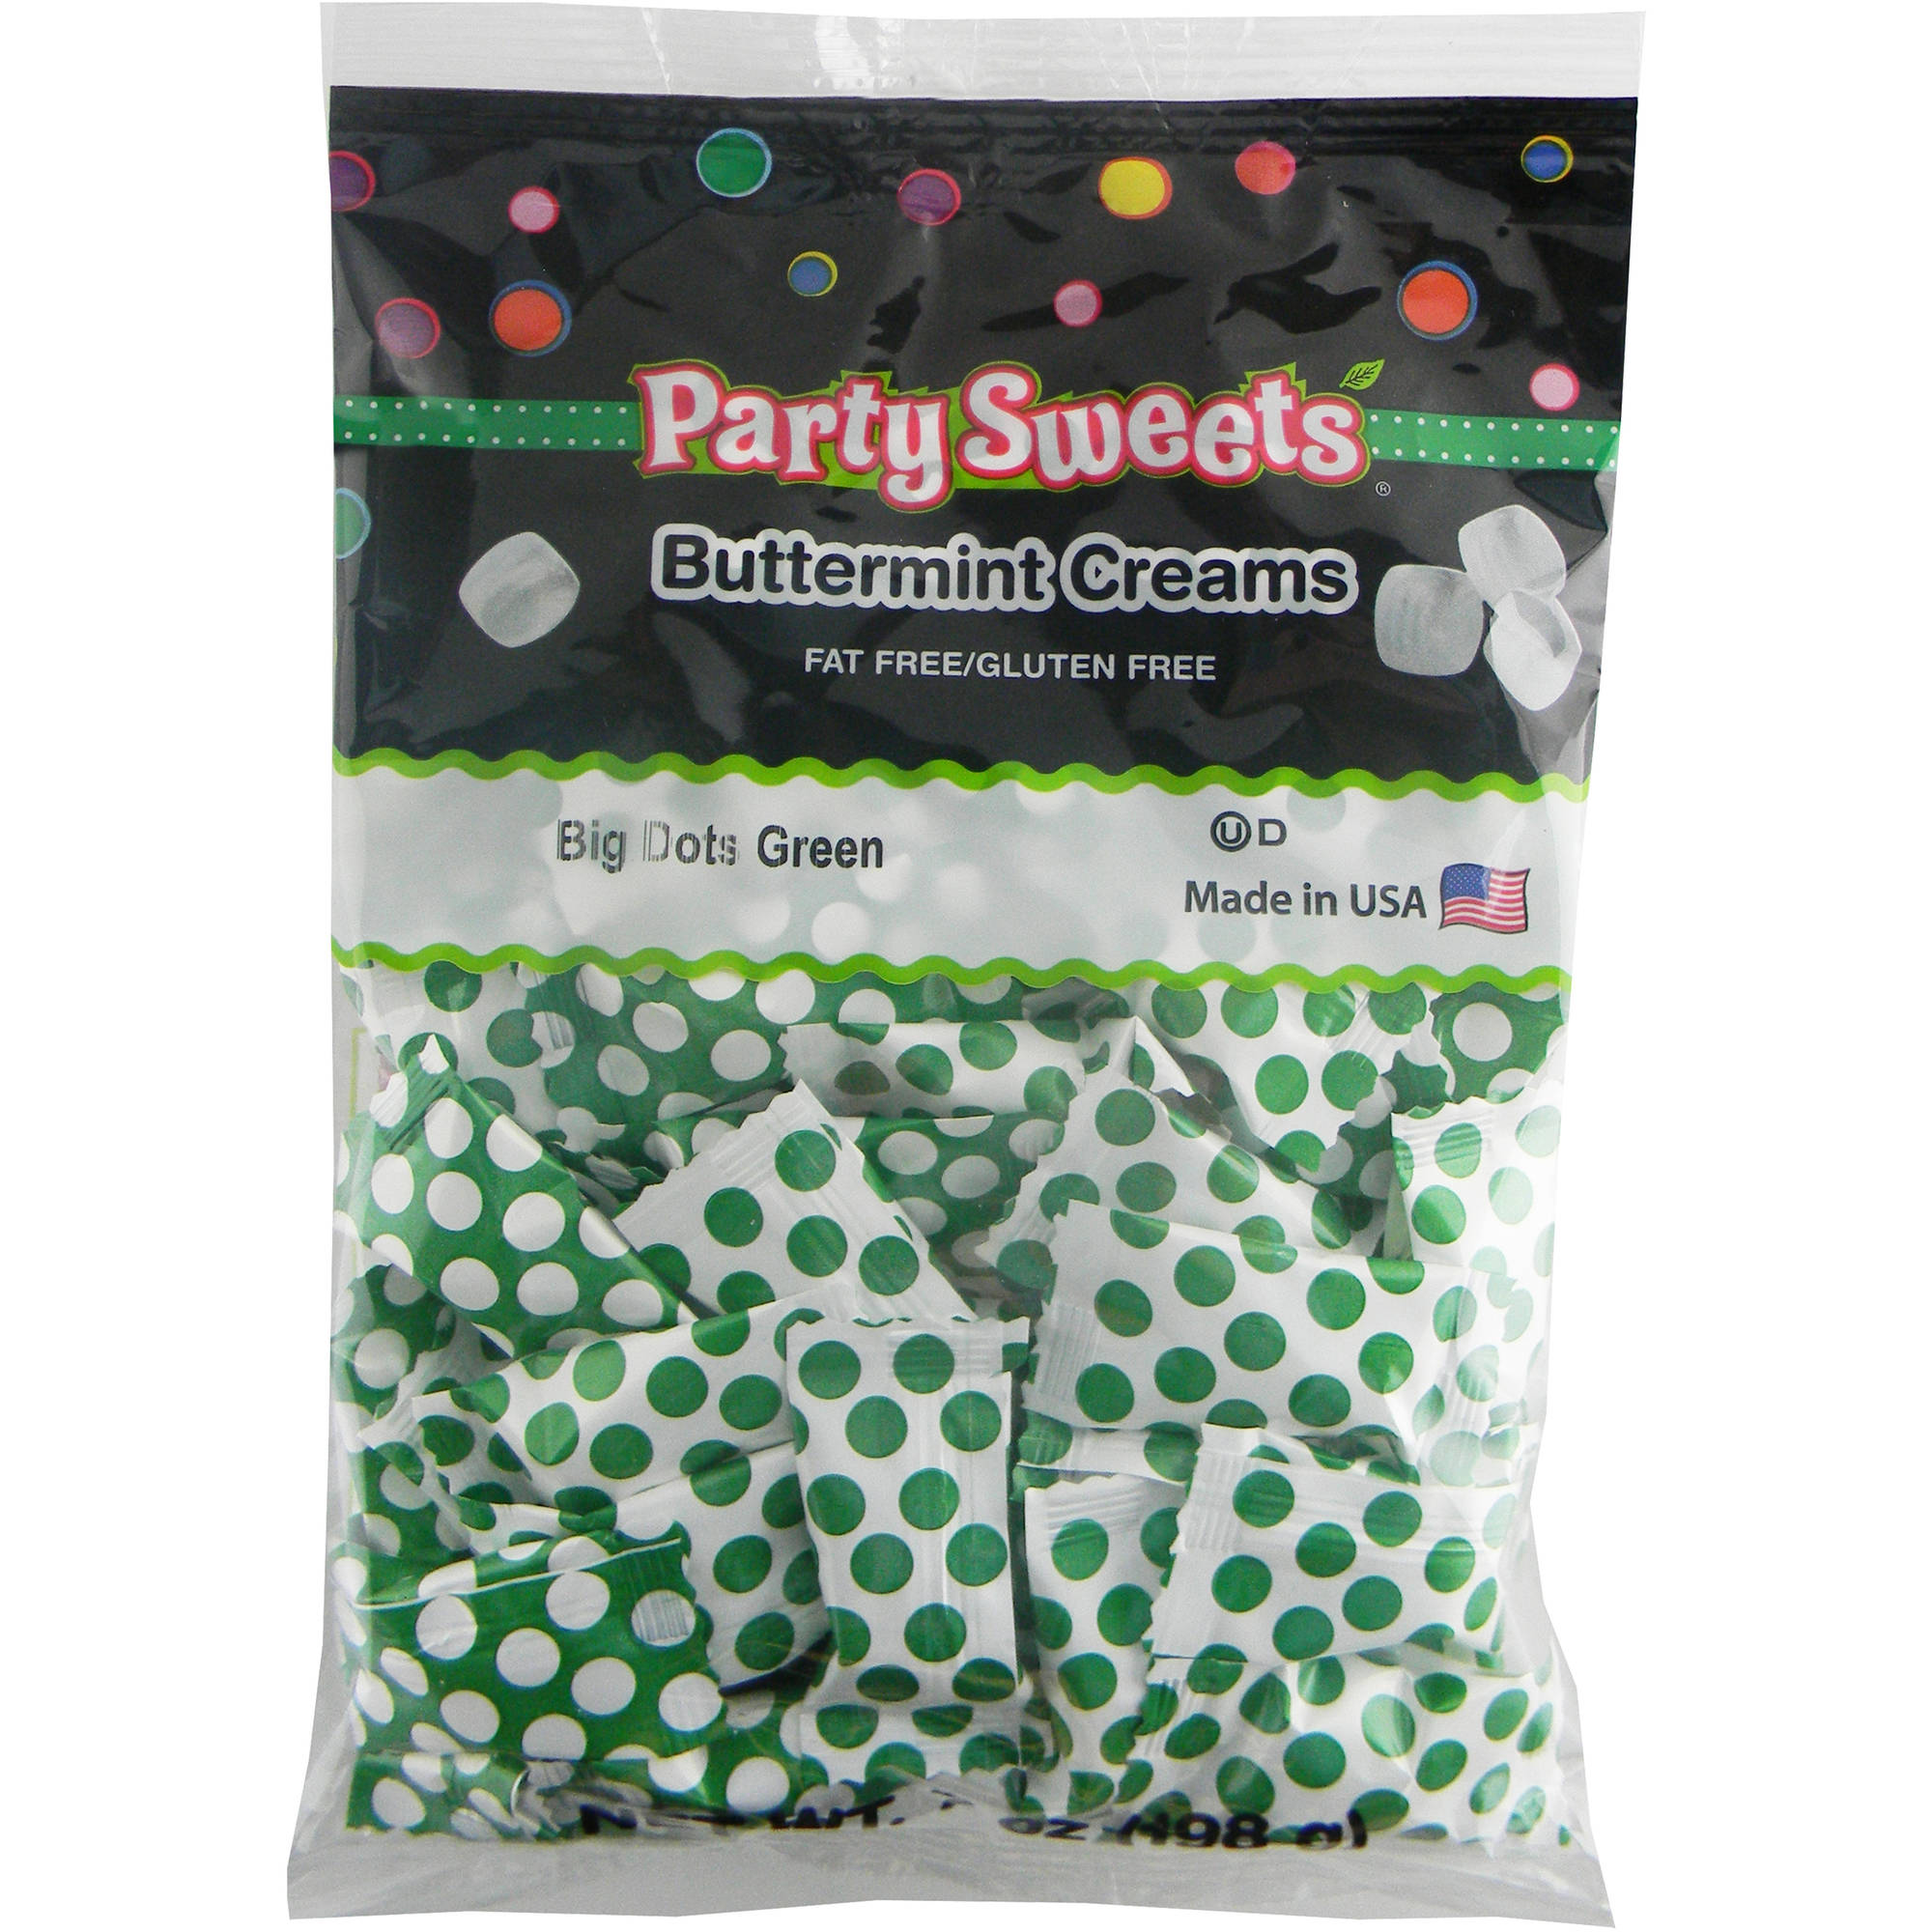 Party Sweets Big Dots Green Buttermint Creams Candy, 7 oz